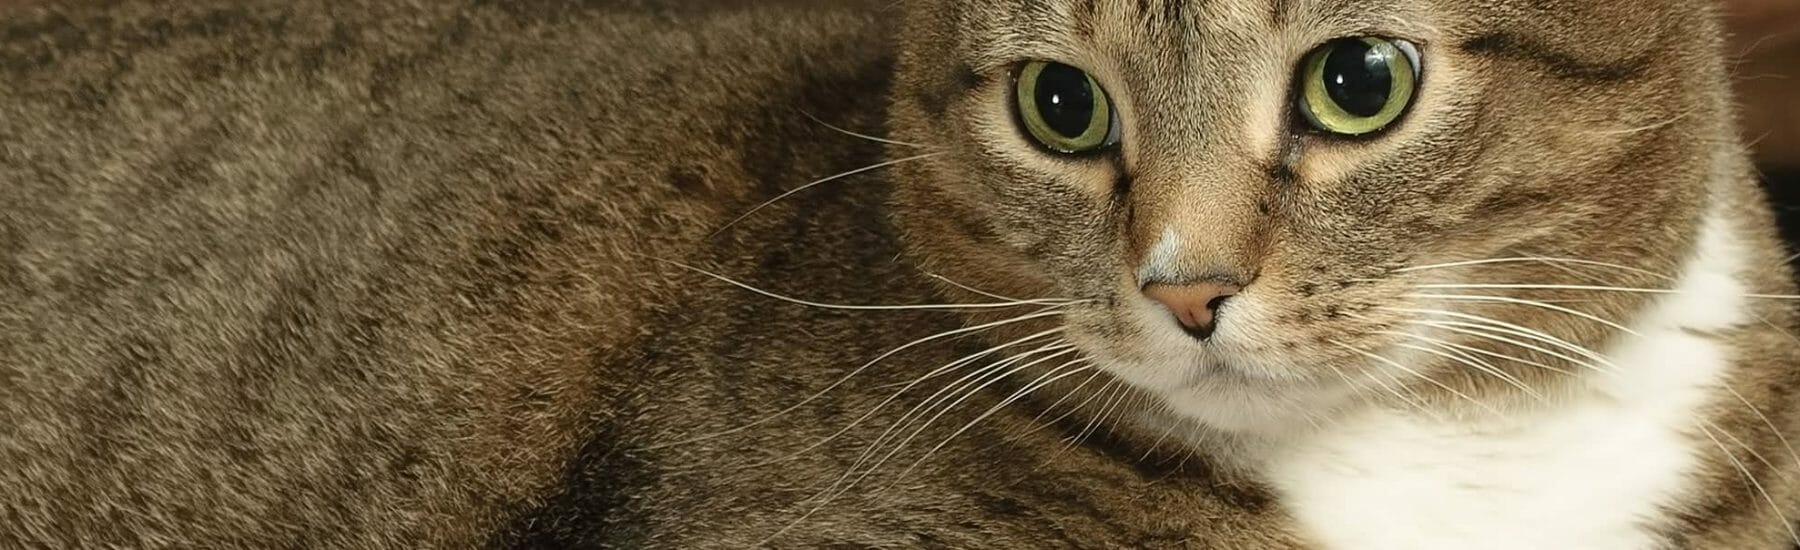 Close up of a cat looking to the left